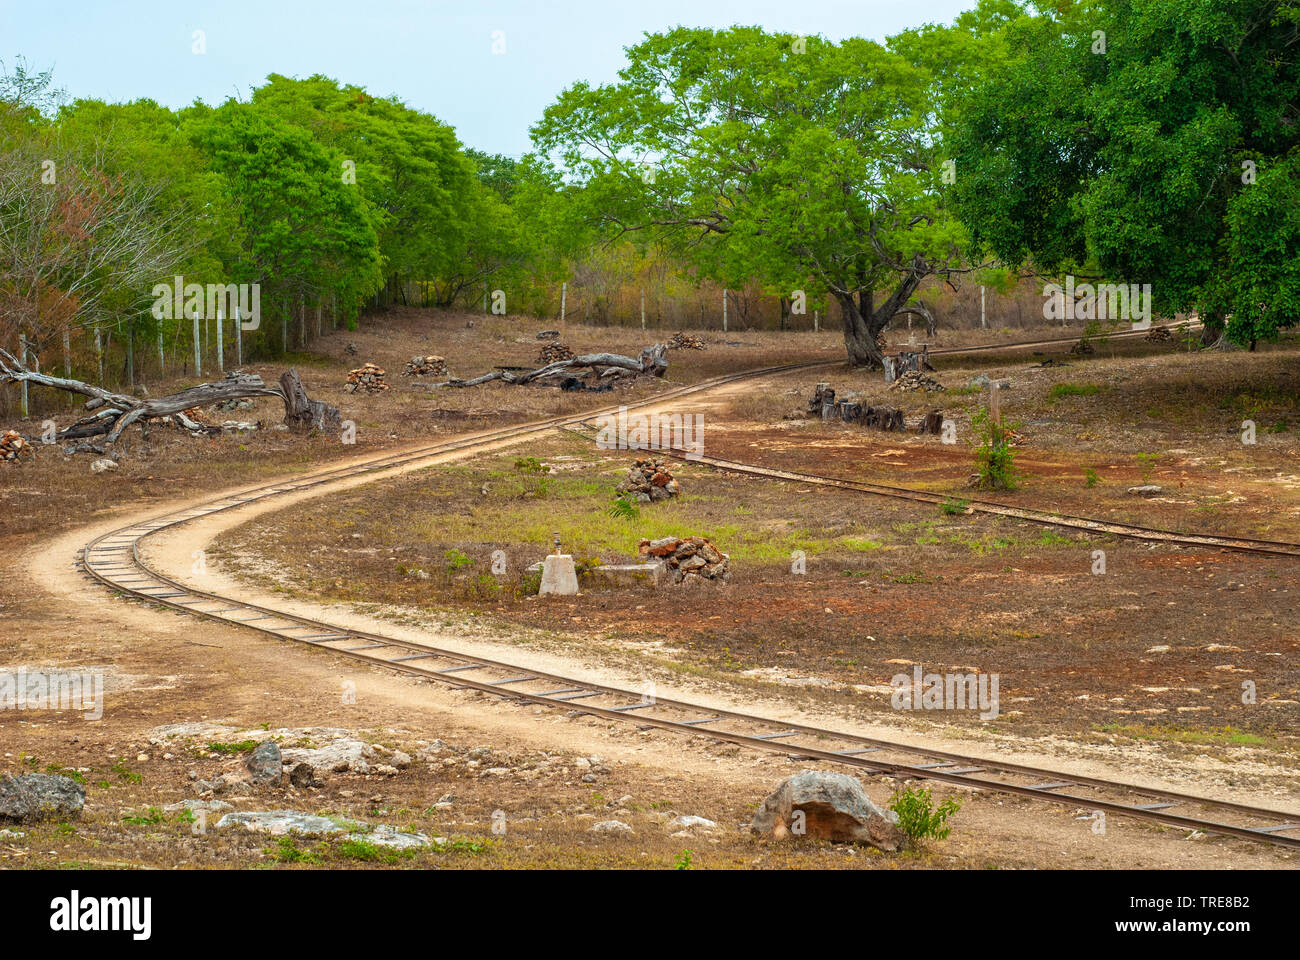 Sorting area with rails, taken in a plantation of Agave, in Tecoh, in the Yucatan peninsula - Stock Image